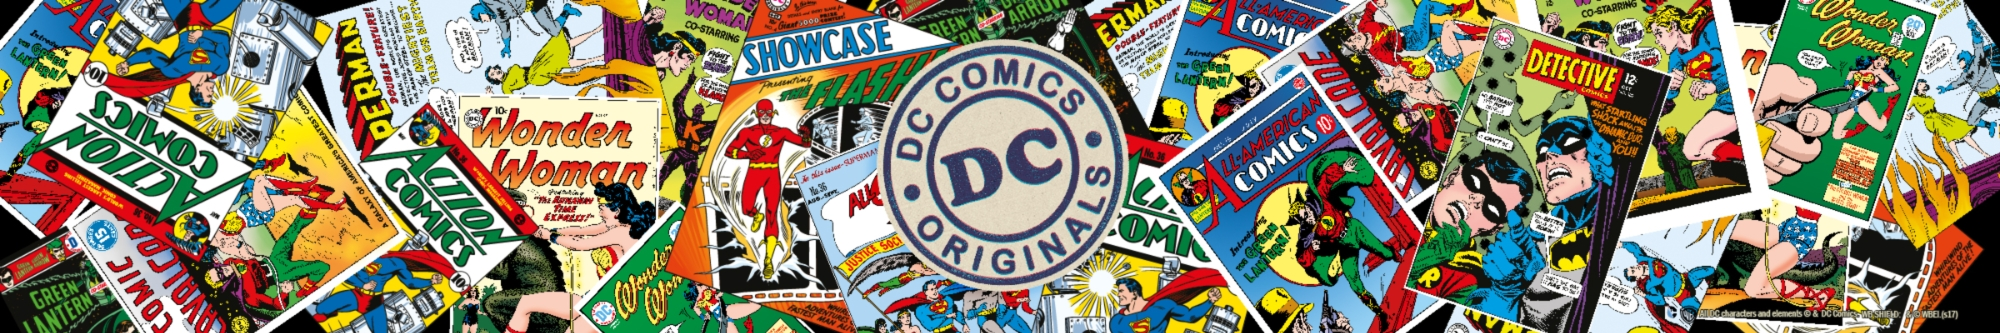 Showroom - dccomicsoriginals